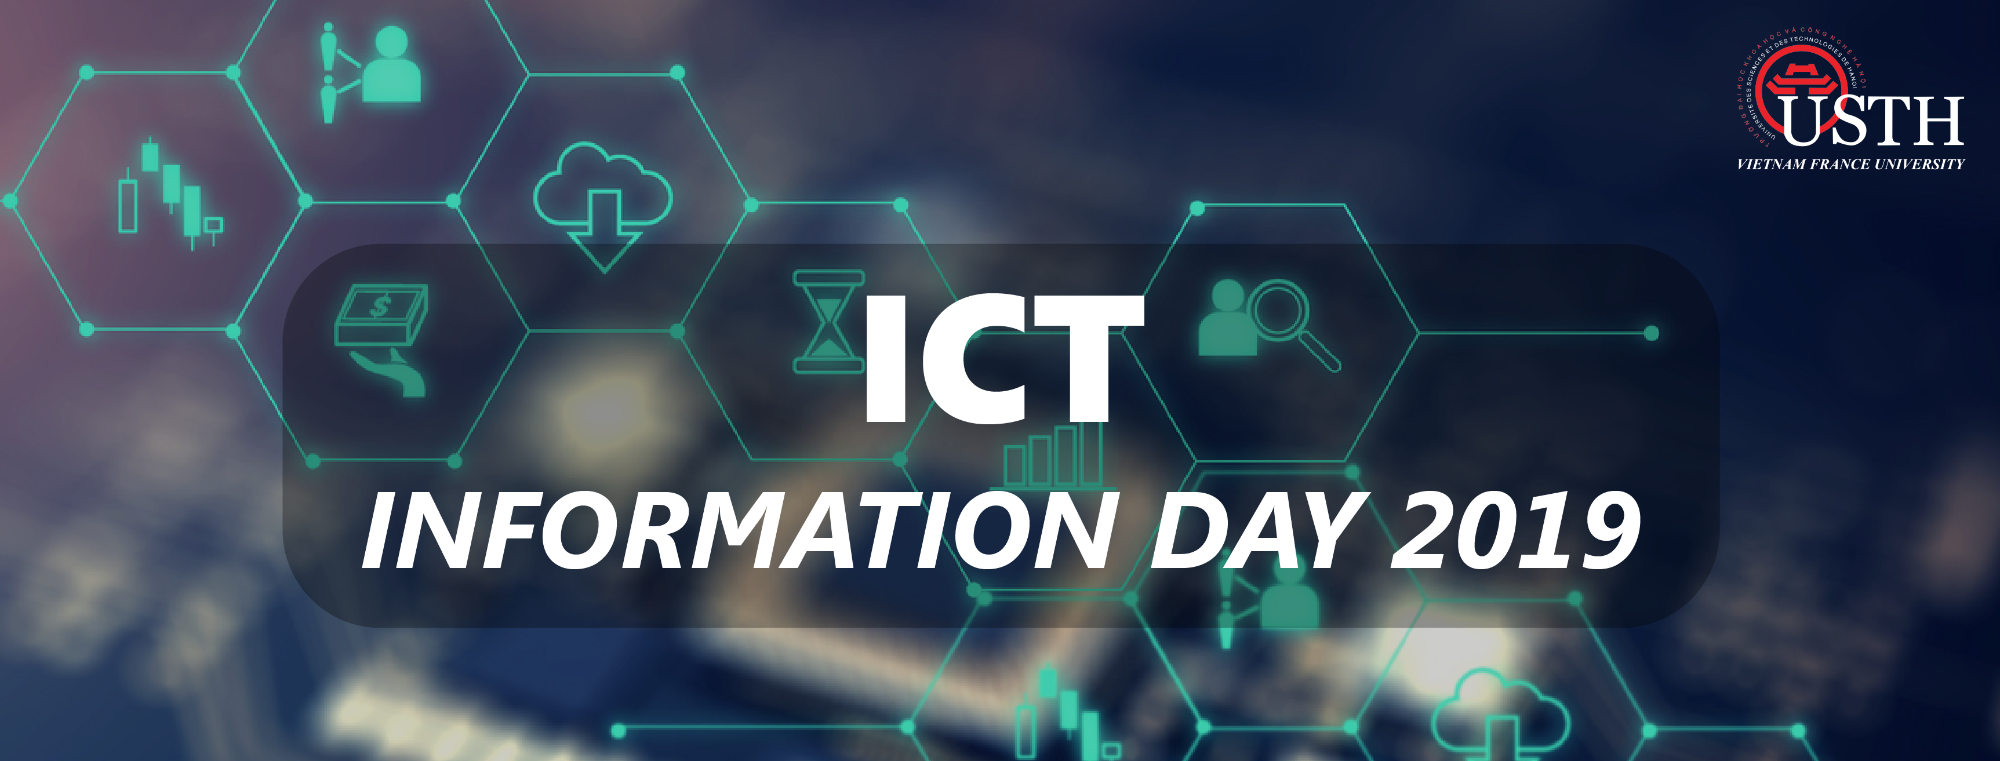 ICT information day 2019